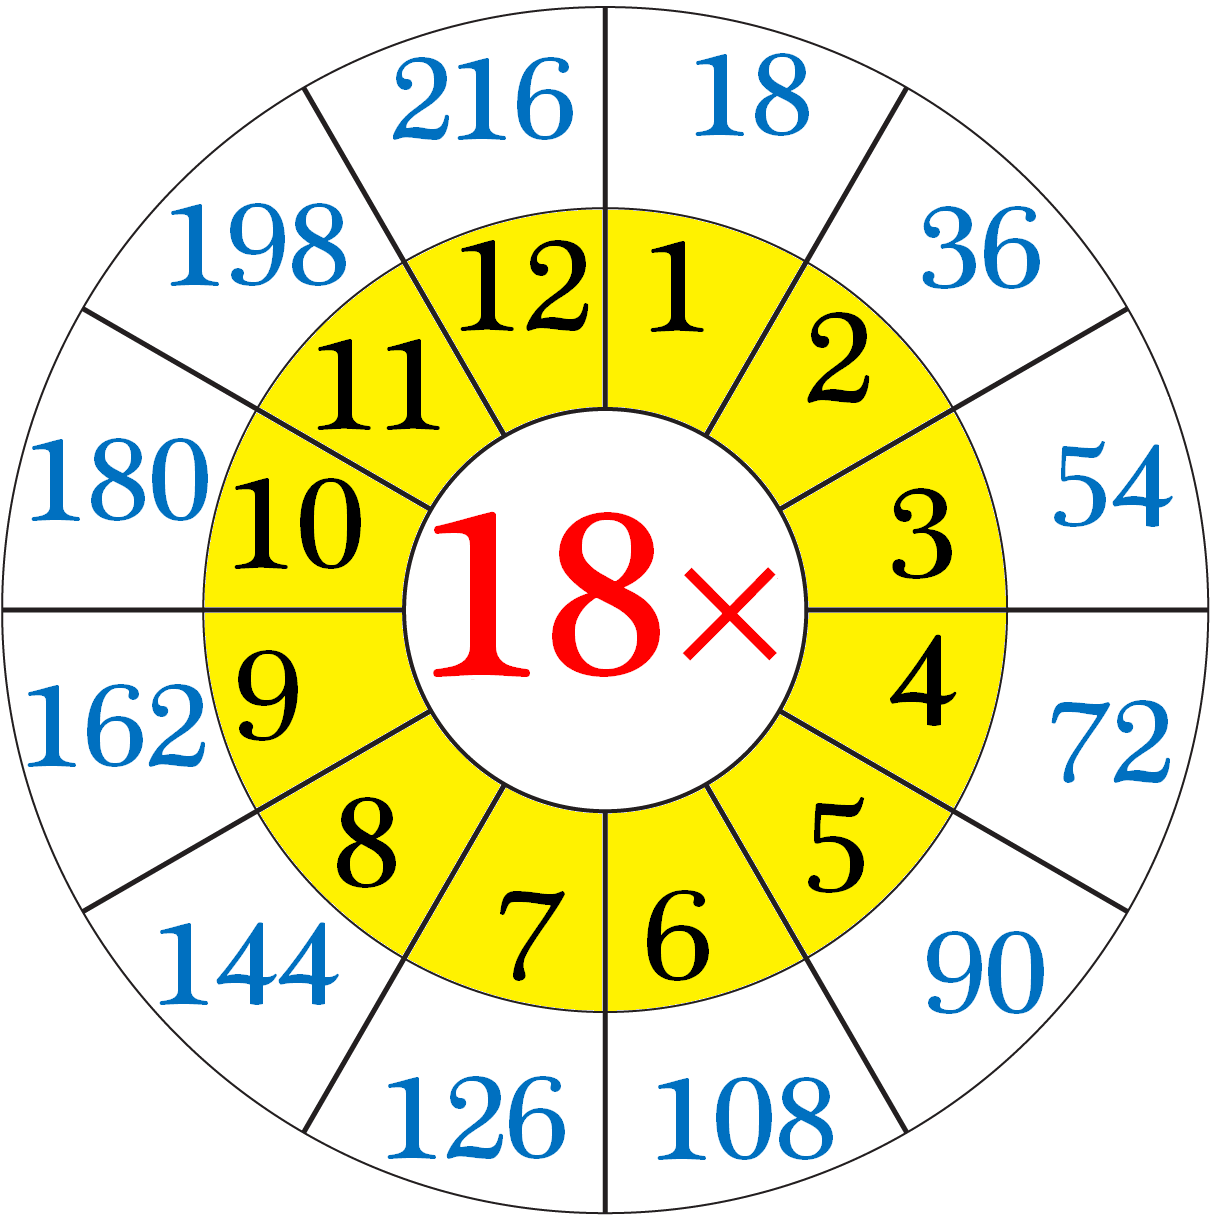 Multiplication Table of 18